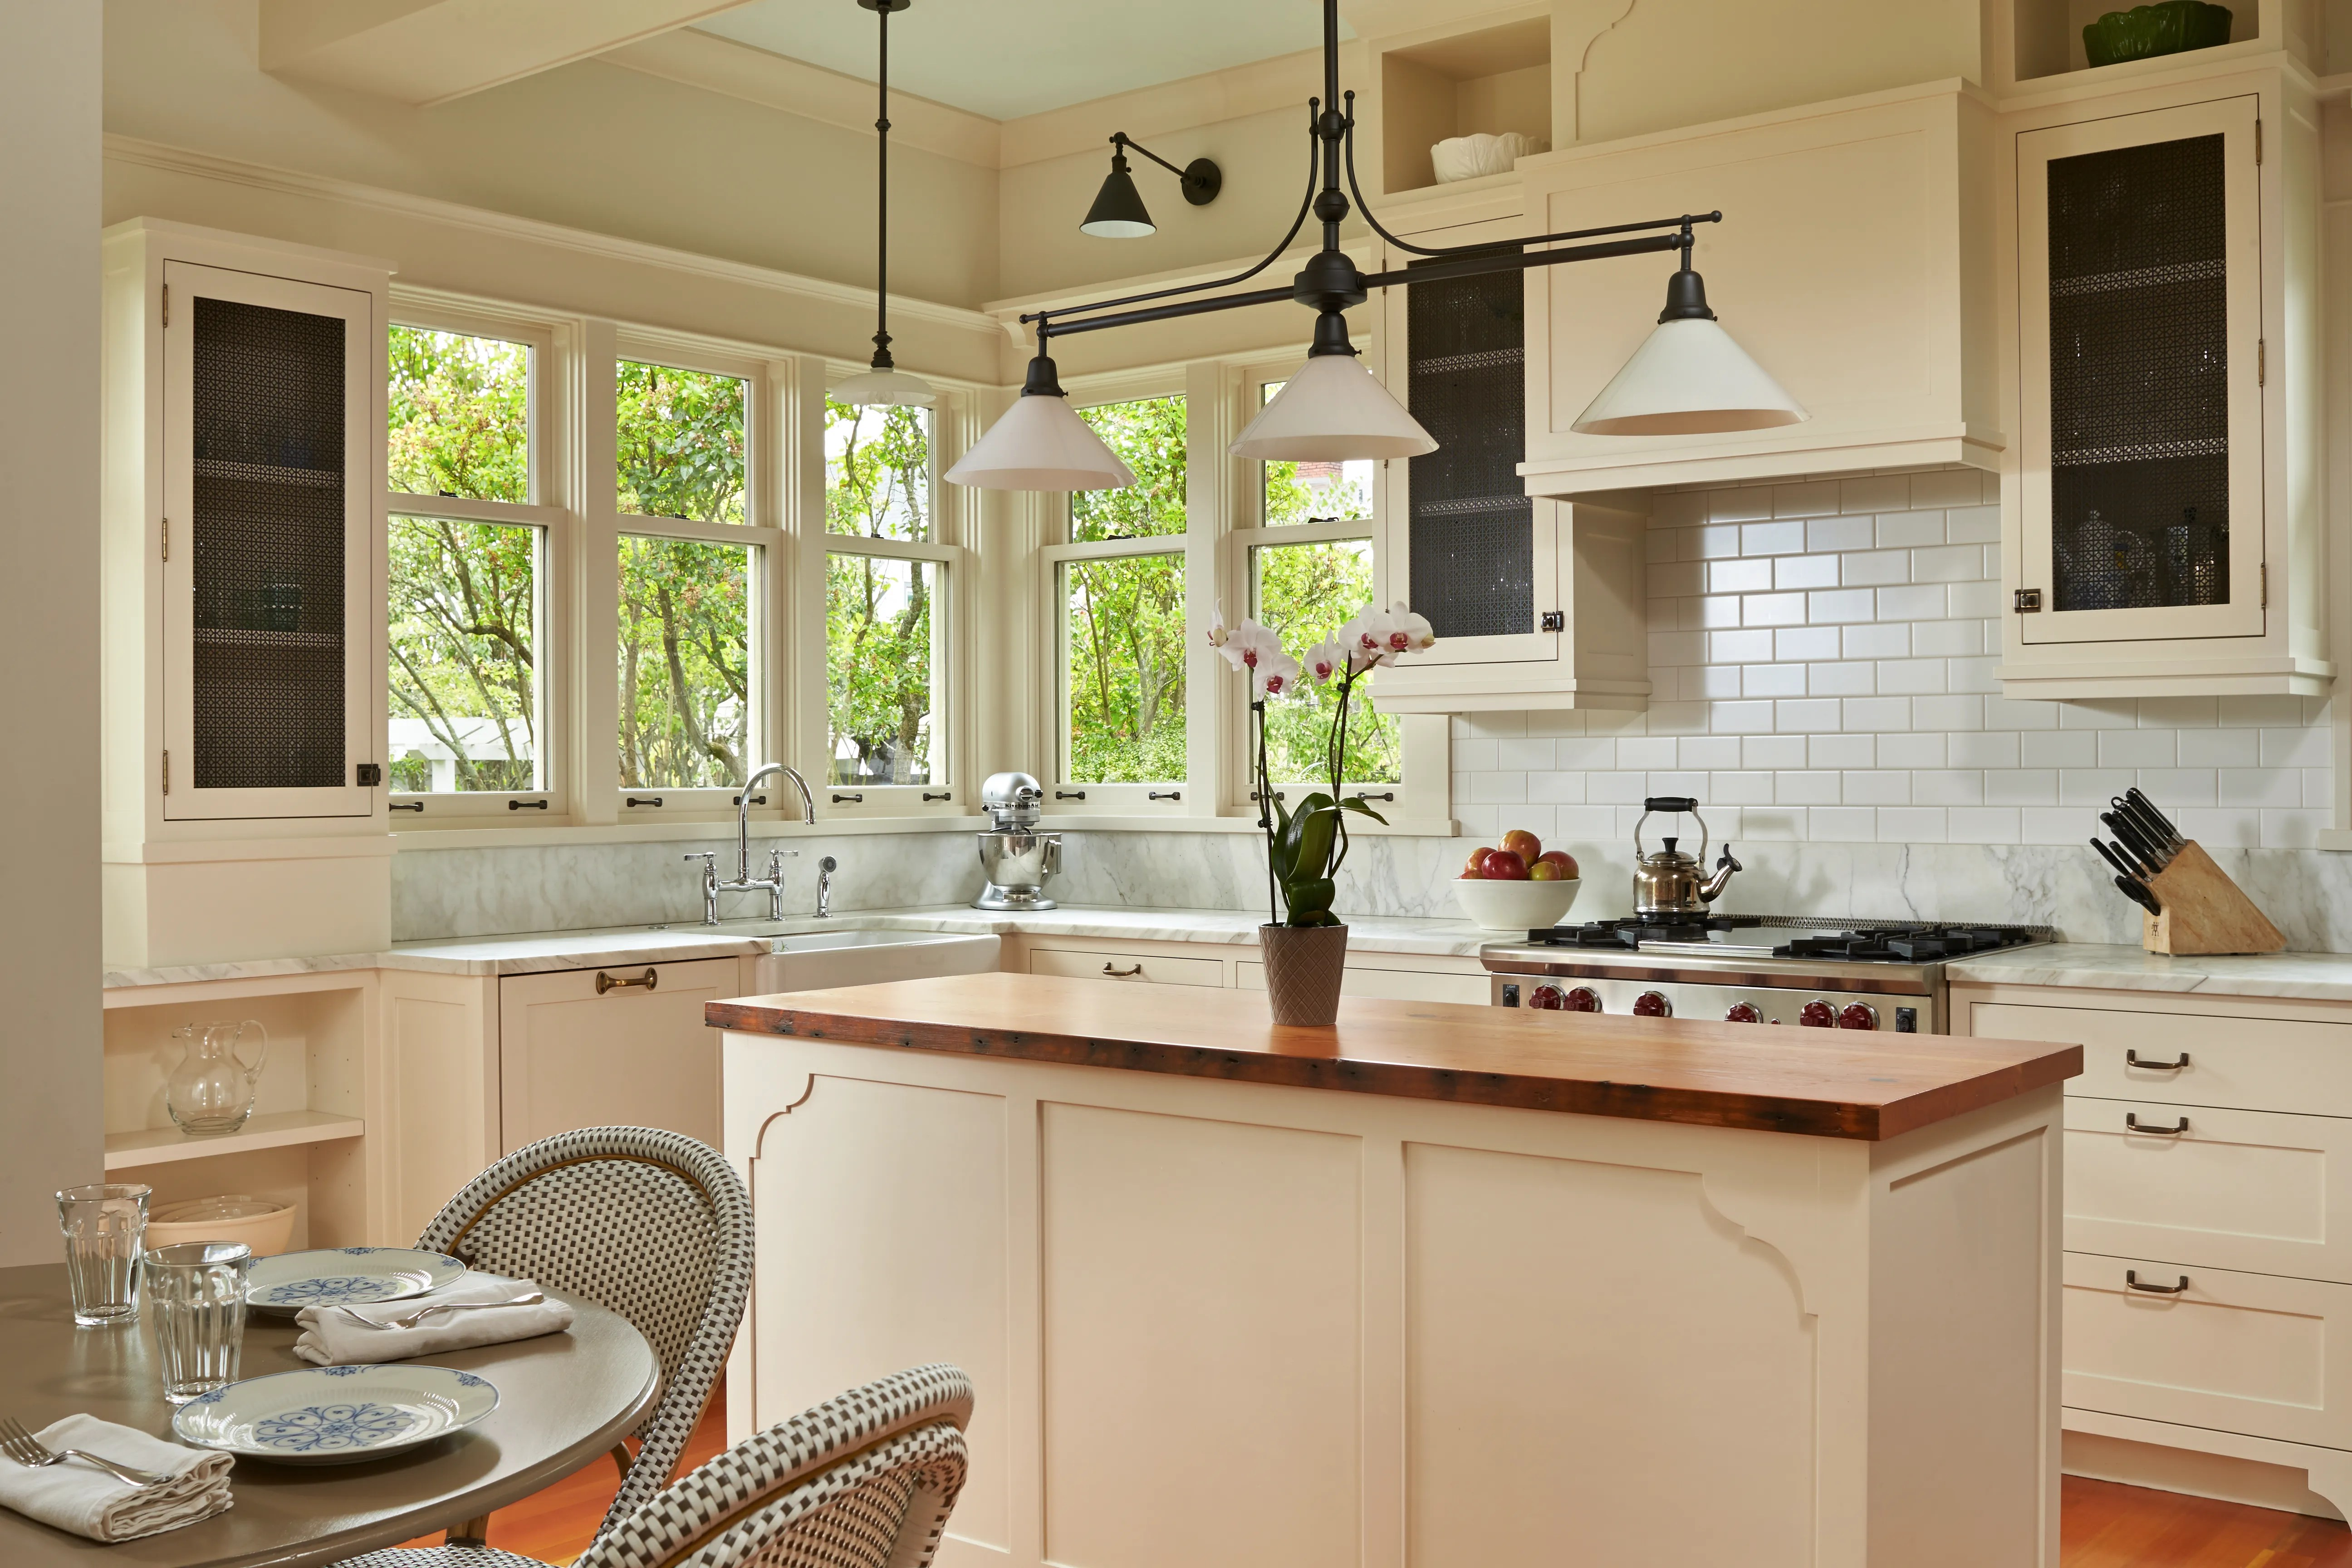 Historic And Eclectic Ballard Home Gets A Careful Update